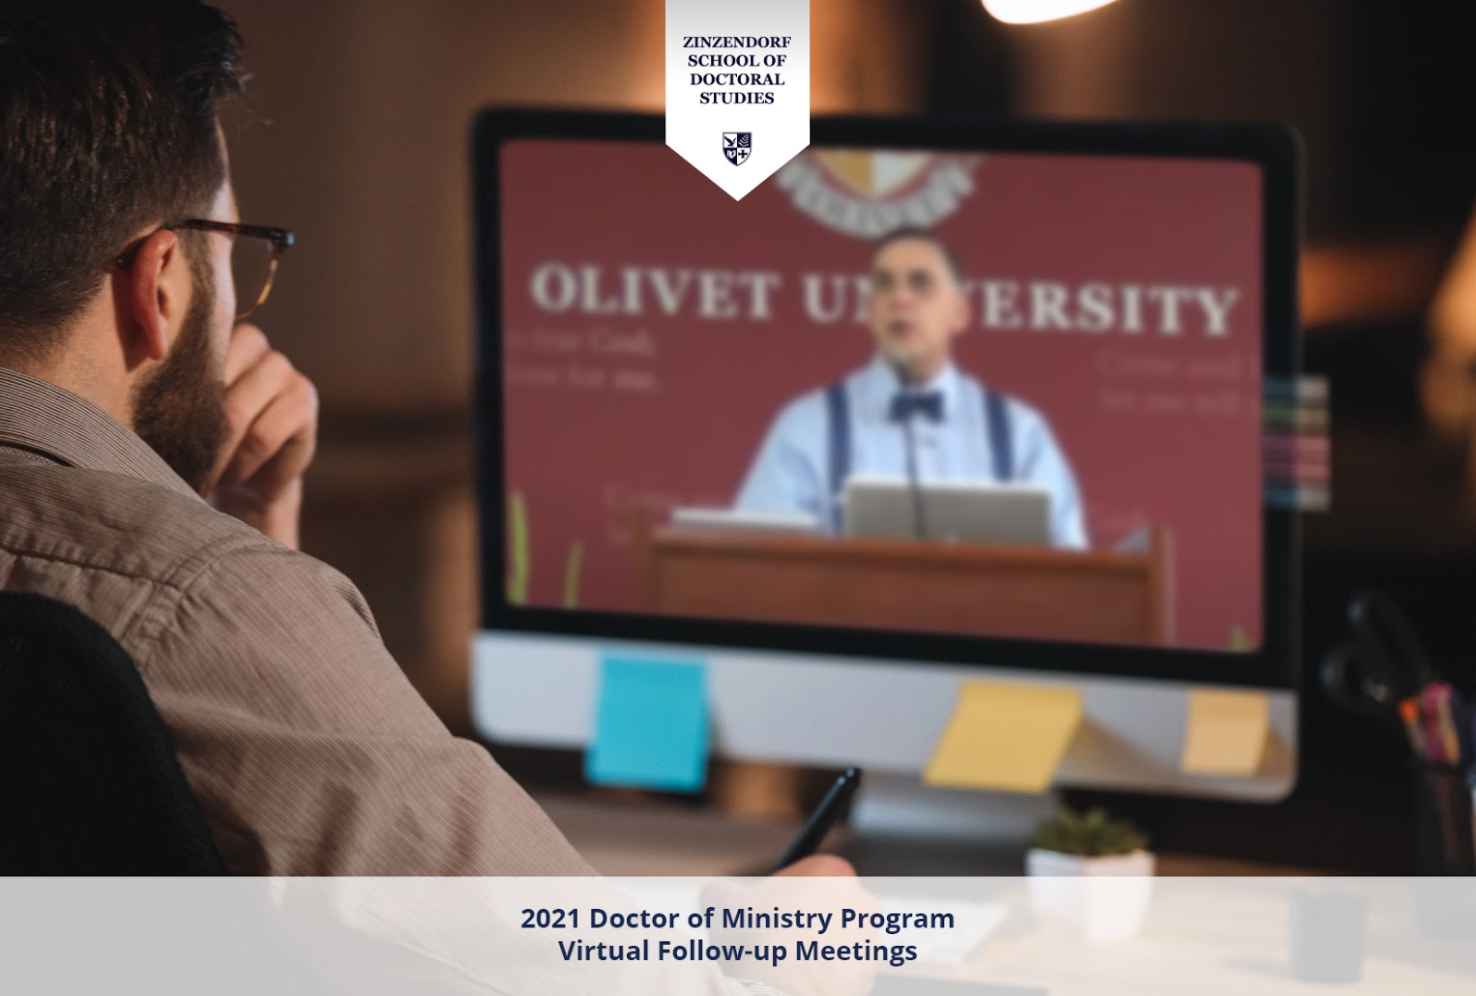 olivet-university-doctor-of-ministry-program-holds-online-follow-up-meetings-with-first-year-students